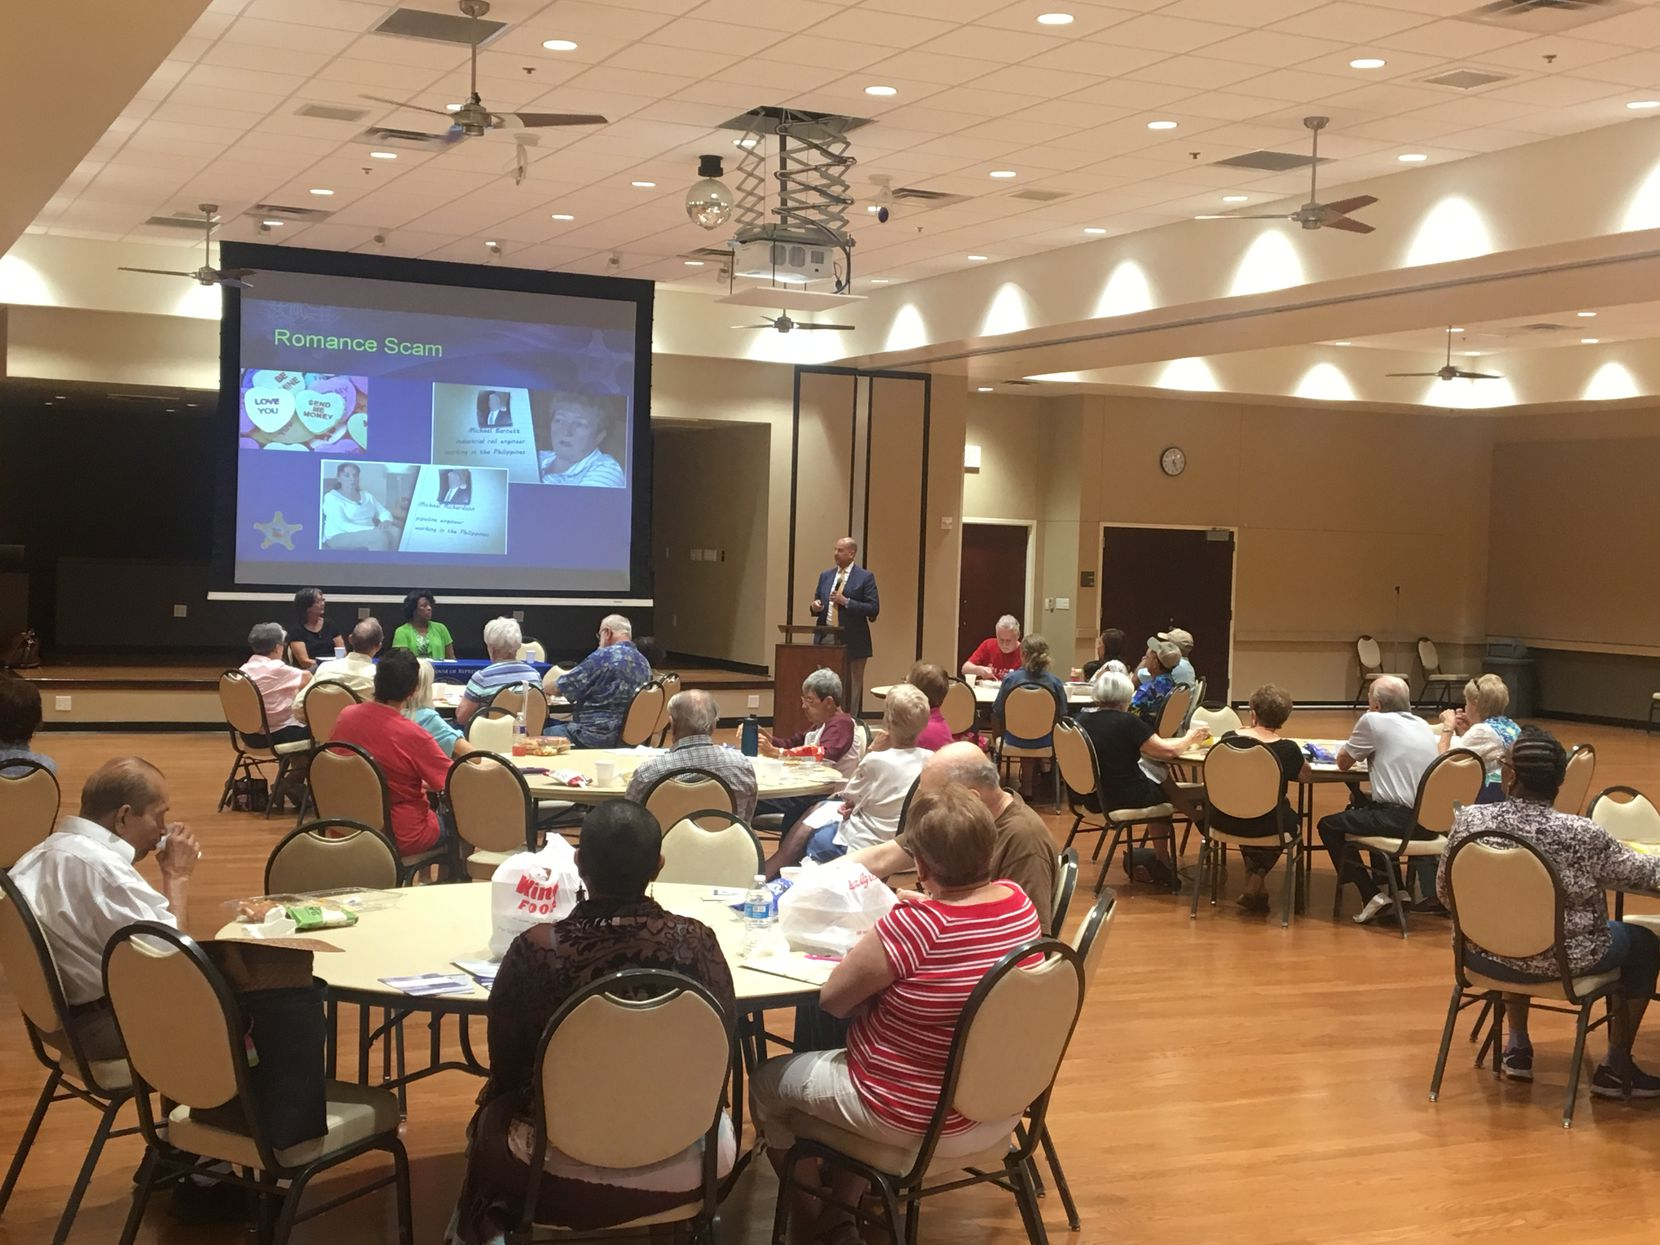 Carrollton seniors attended an ID theft forum hosted by U.S. Rep. Kenny Marchant, but he didn't attend.